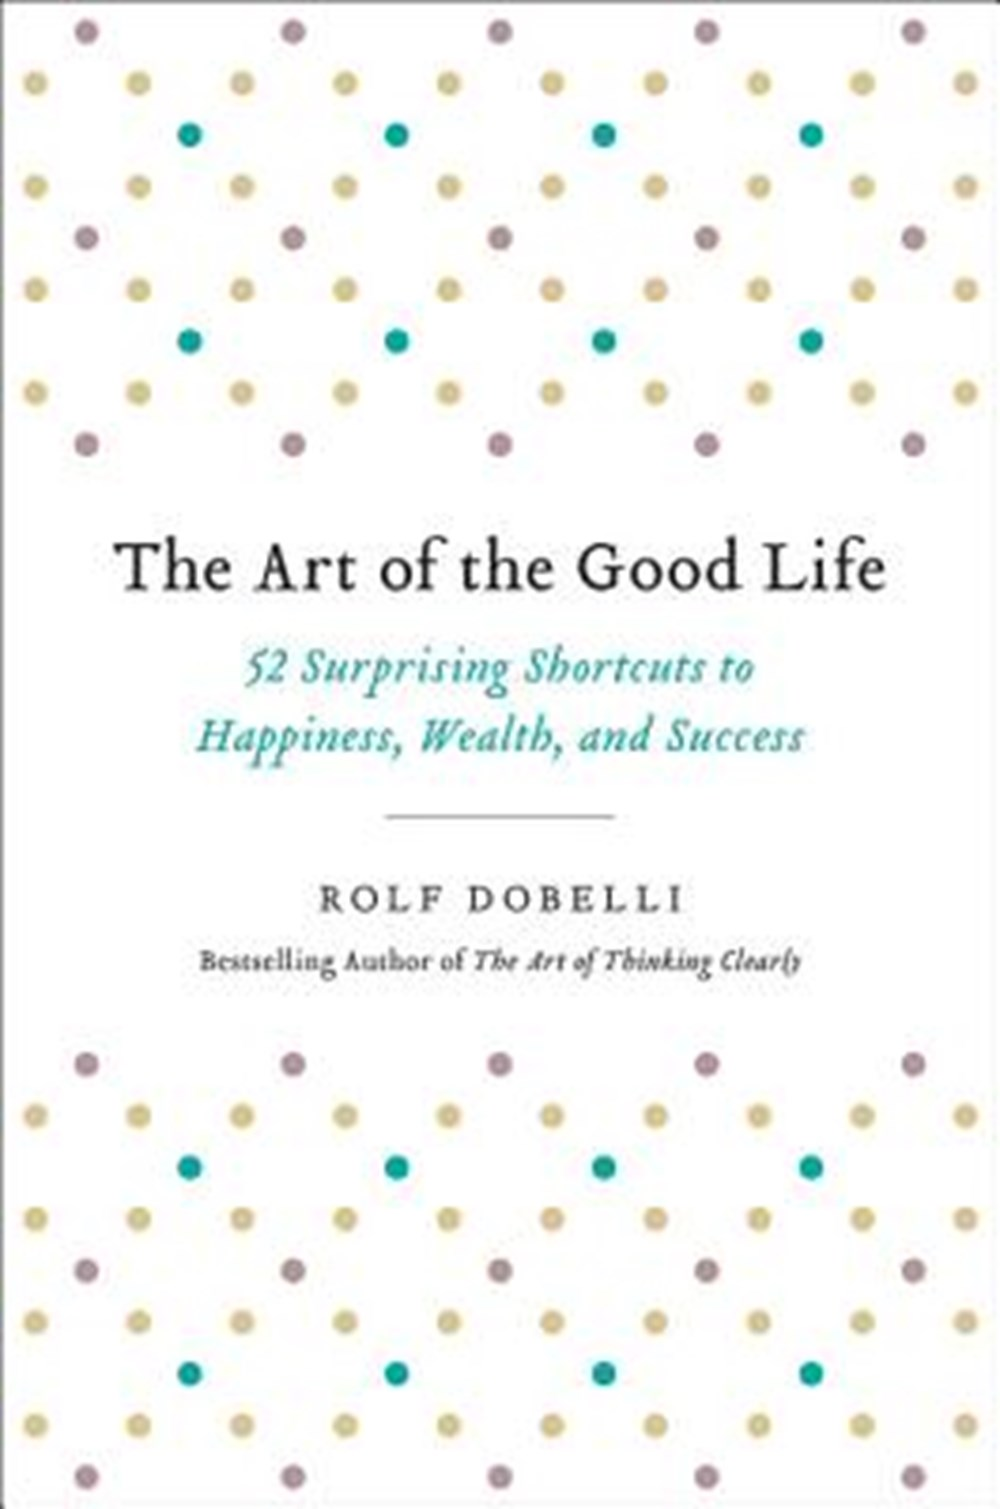 Art of the Good Life 52 Surprising Shortcuts to Happiness, Wealth, and Success